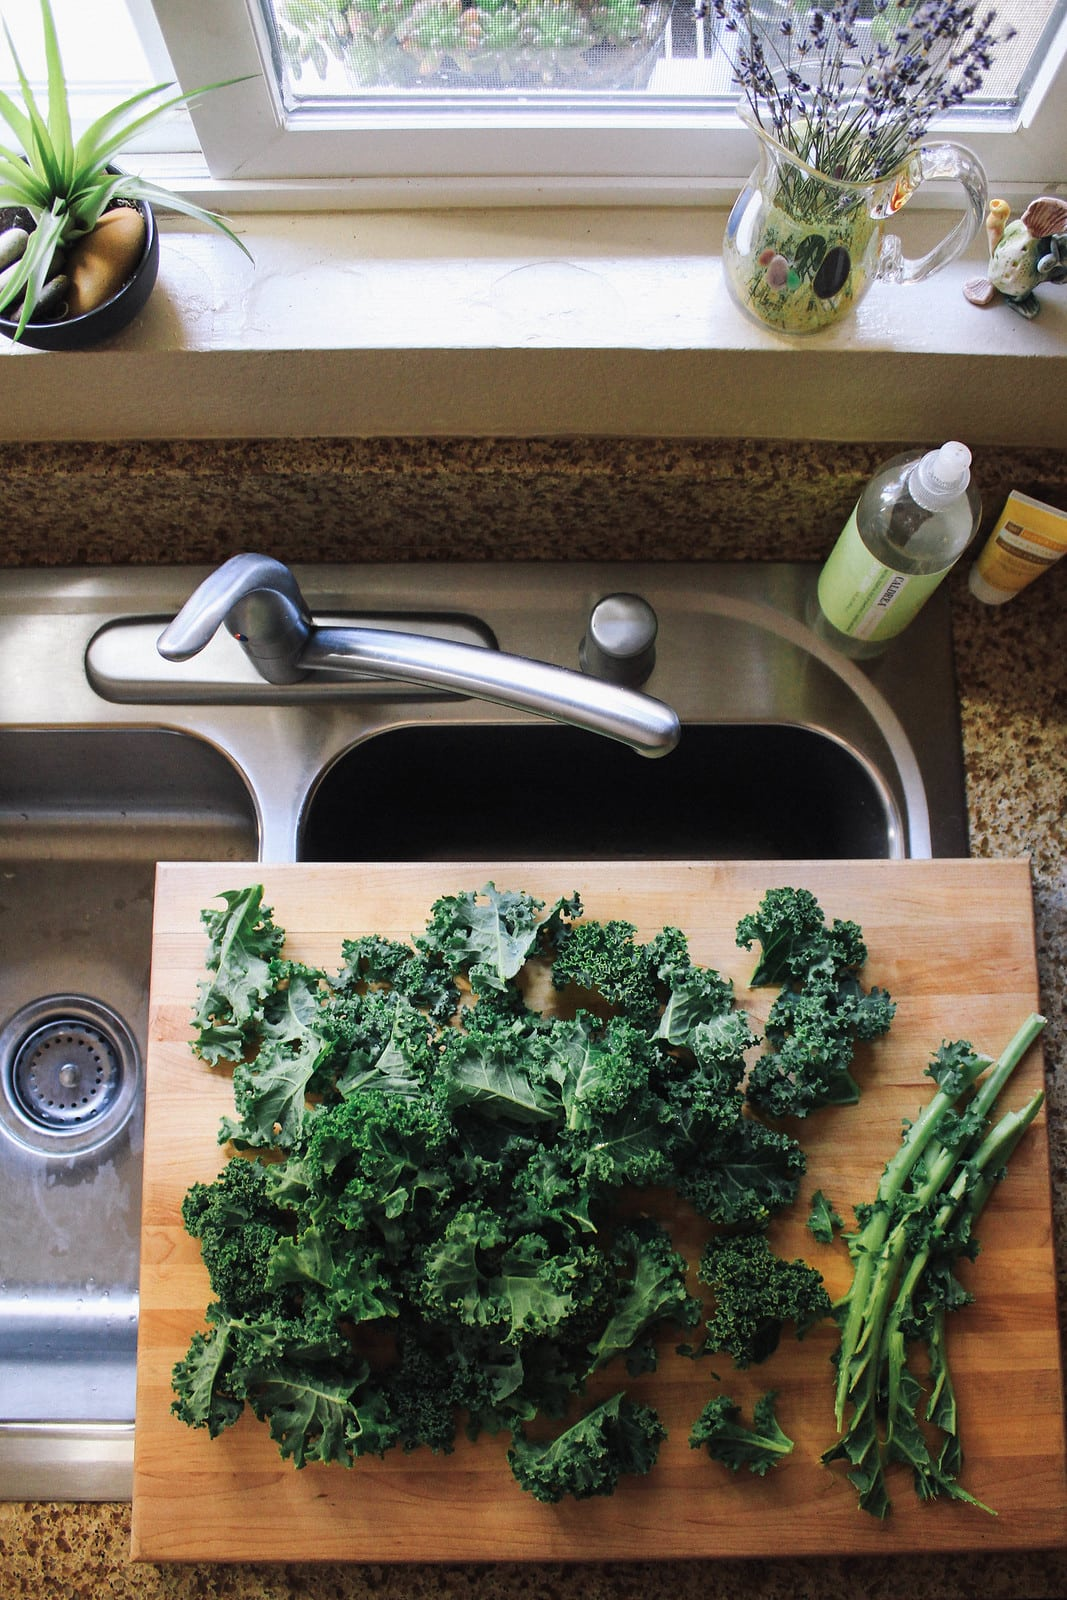 top down view of kale being prepped on a wooden cutting board.